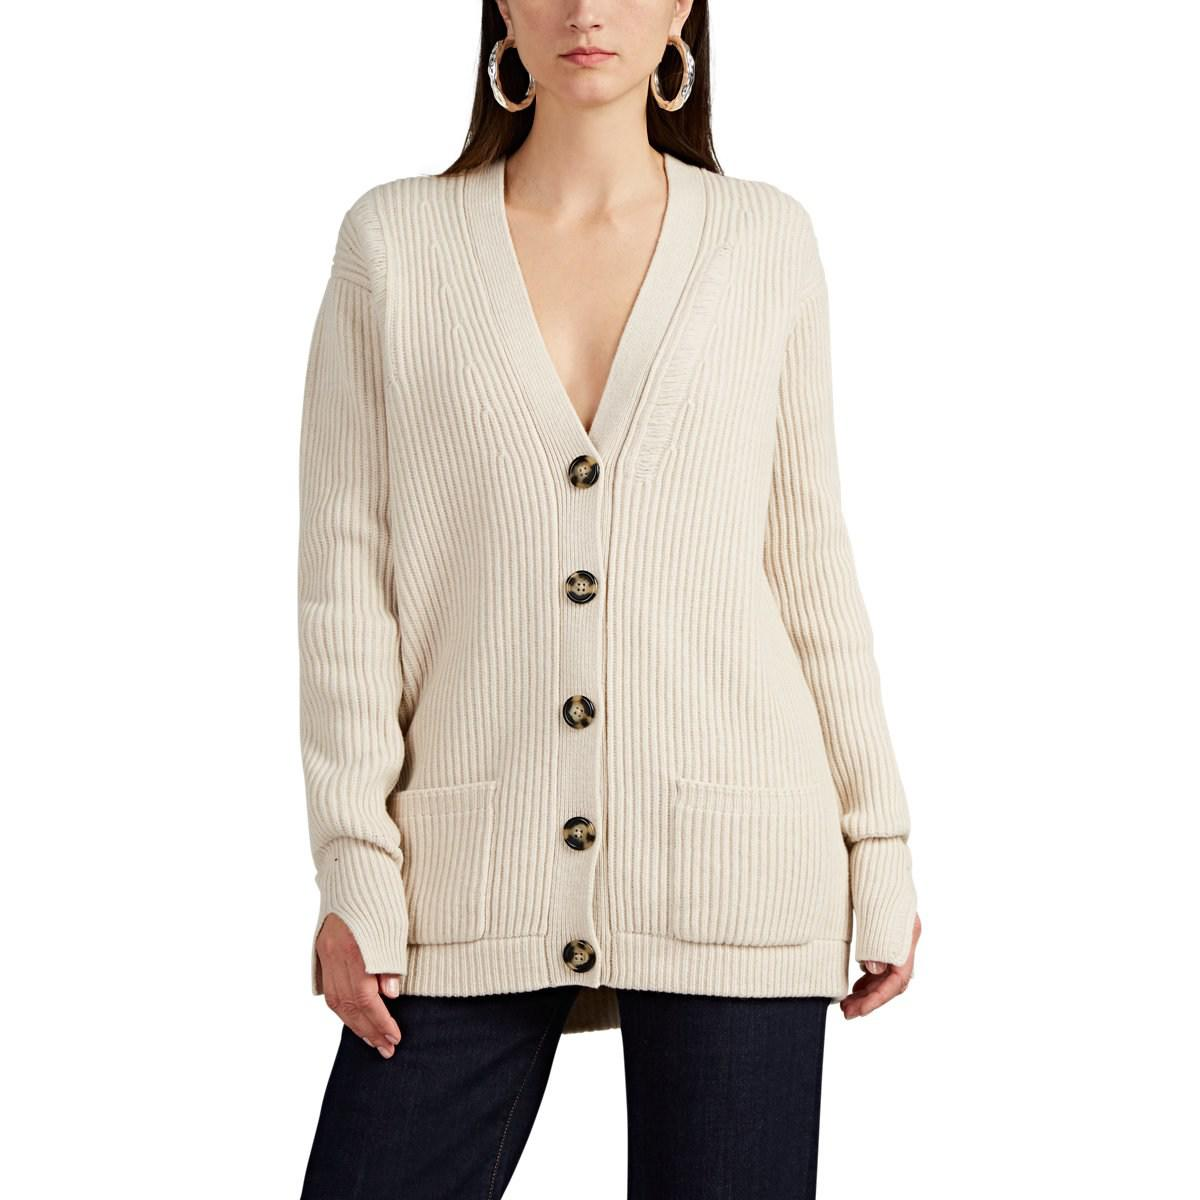 Helmut Lang Distressed Wool Oversized Cardigan in Natural - Lyst a9786833f